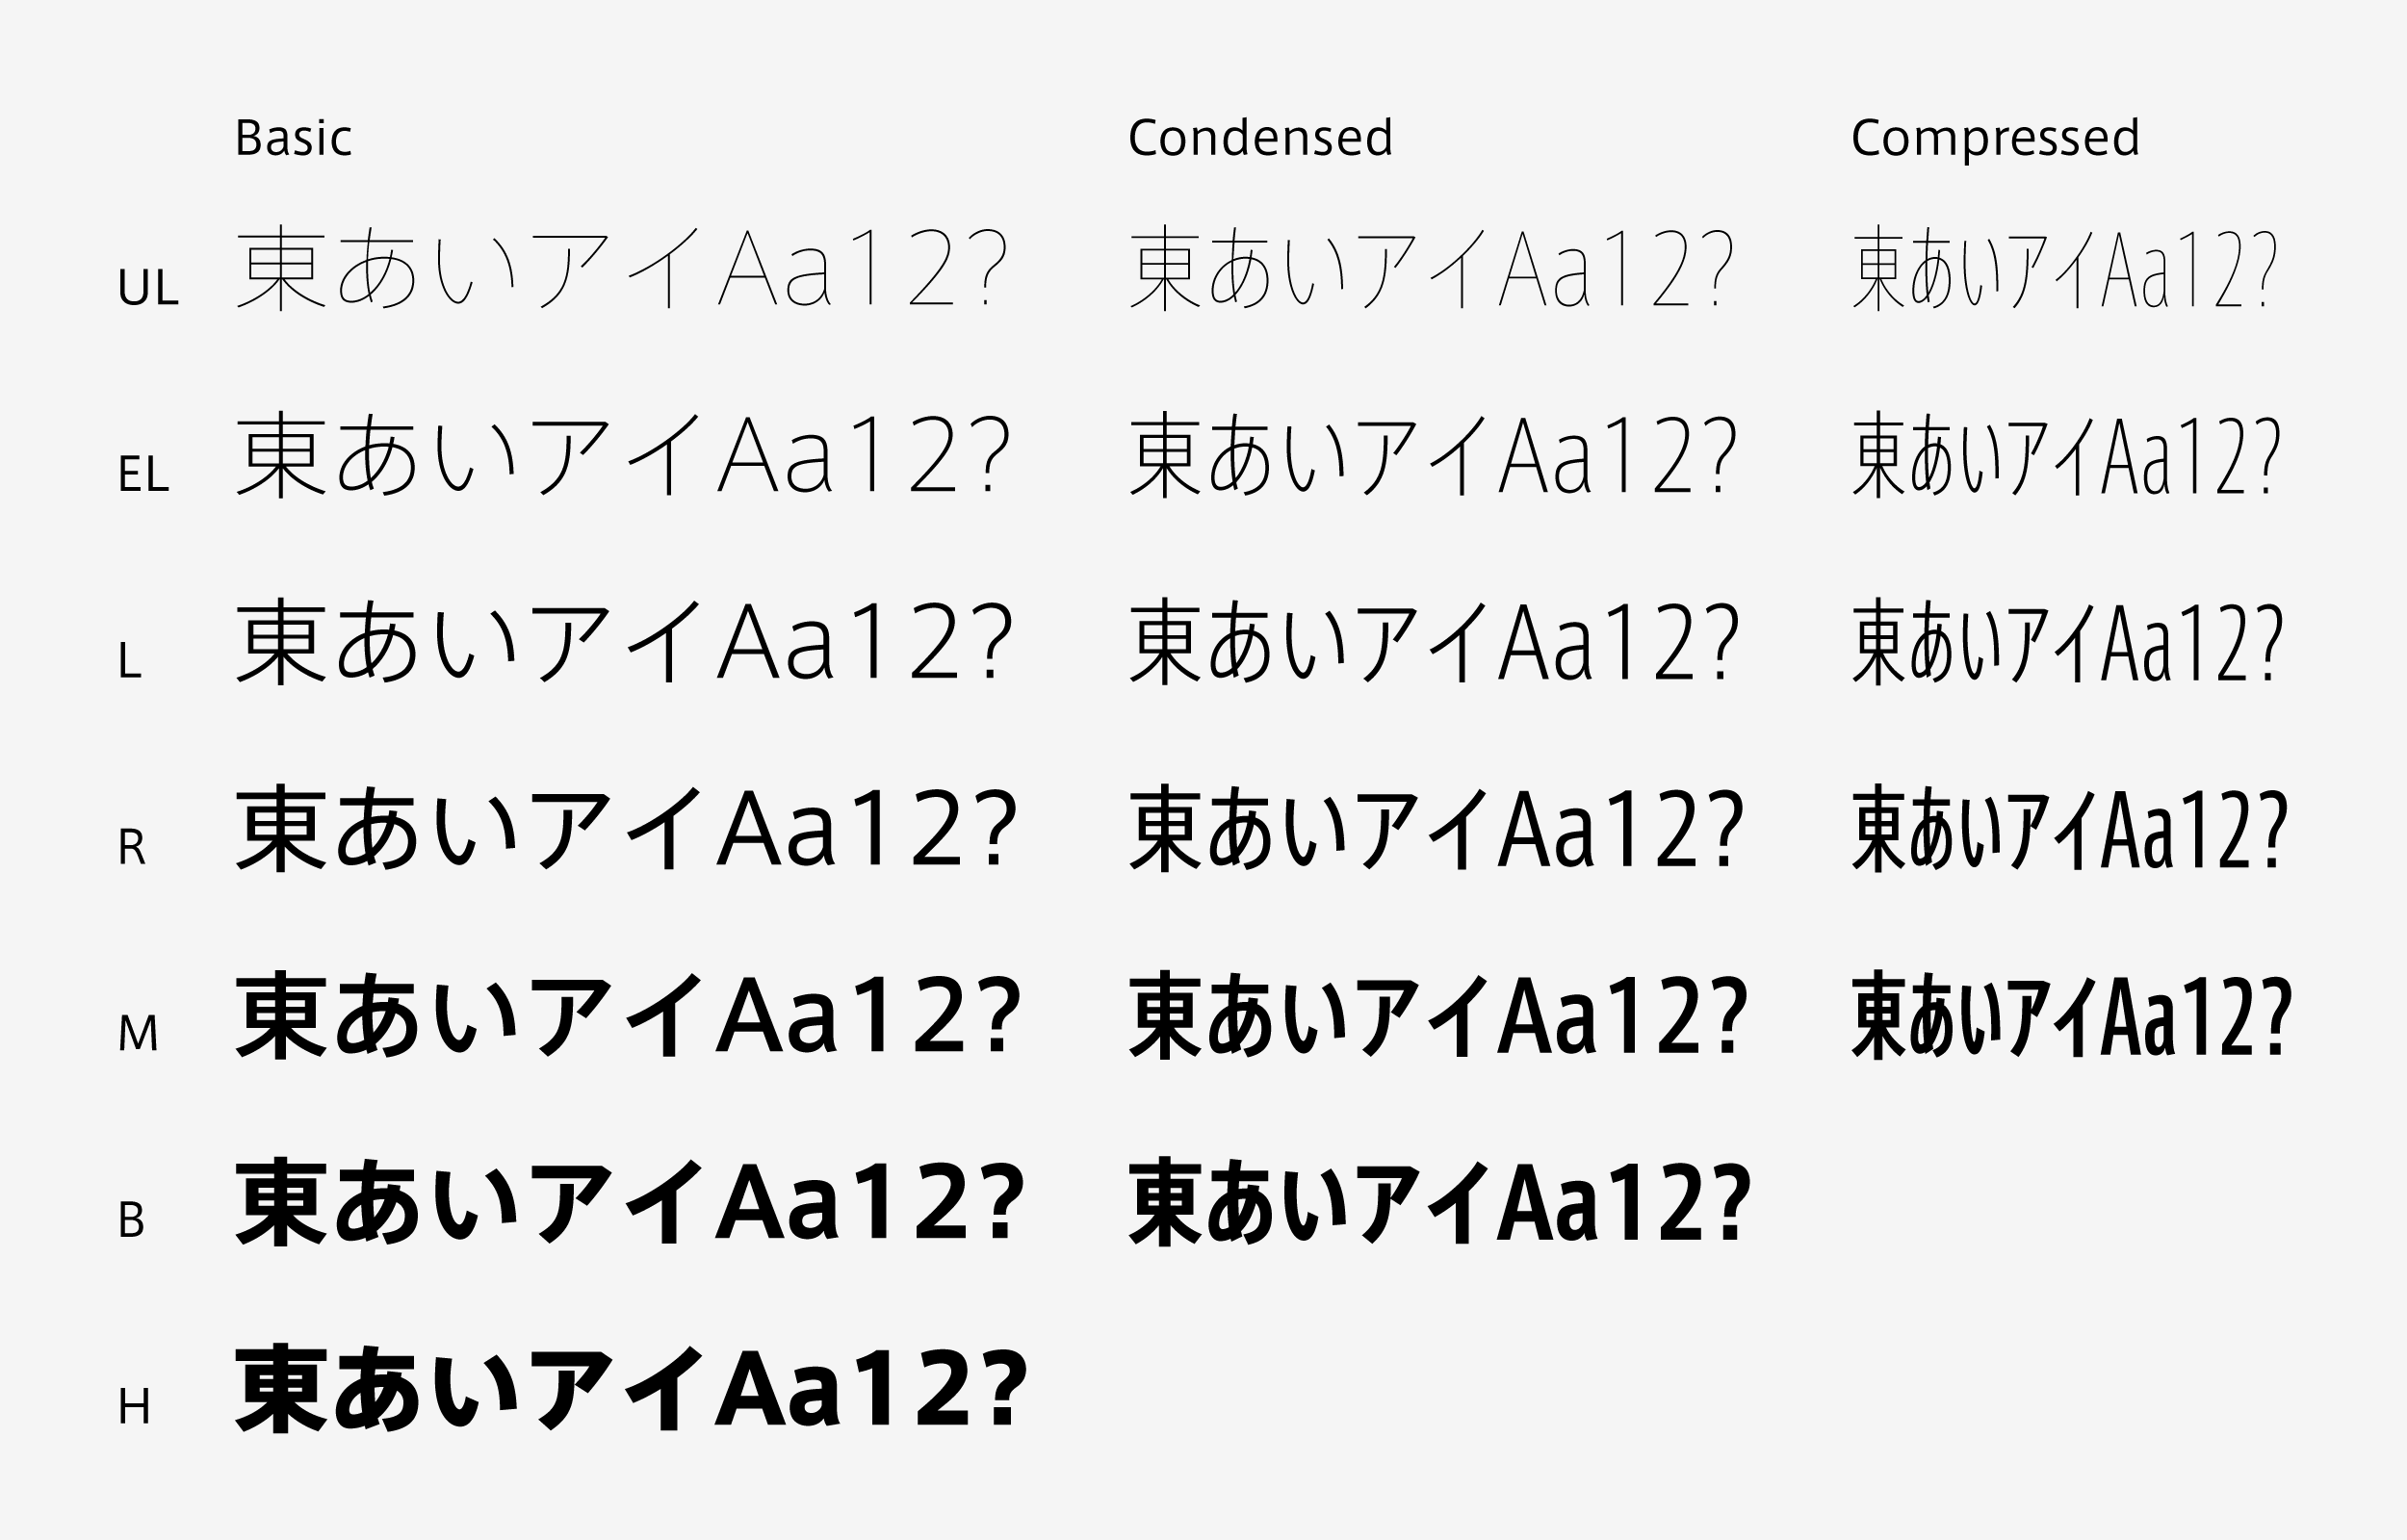 AXIS Font | Type Project | タイププロジェクト